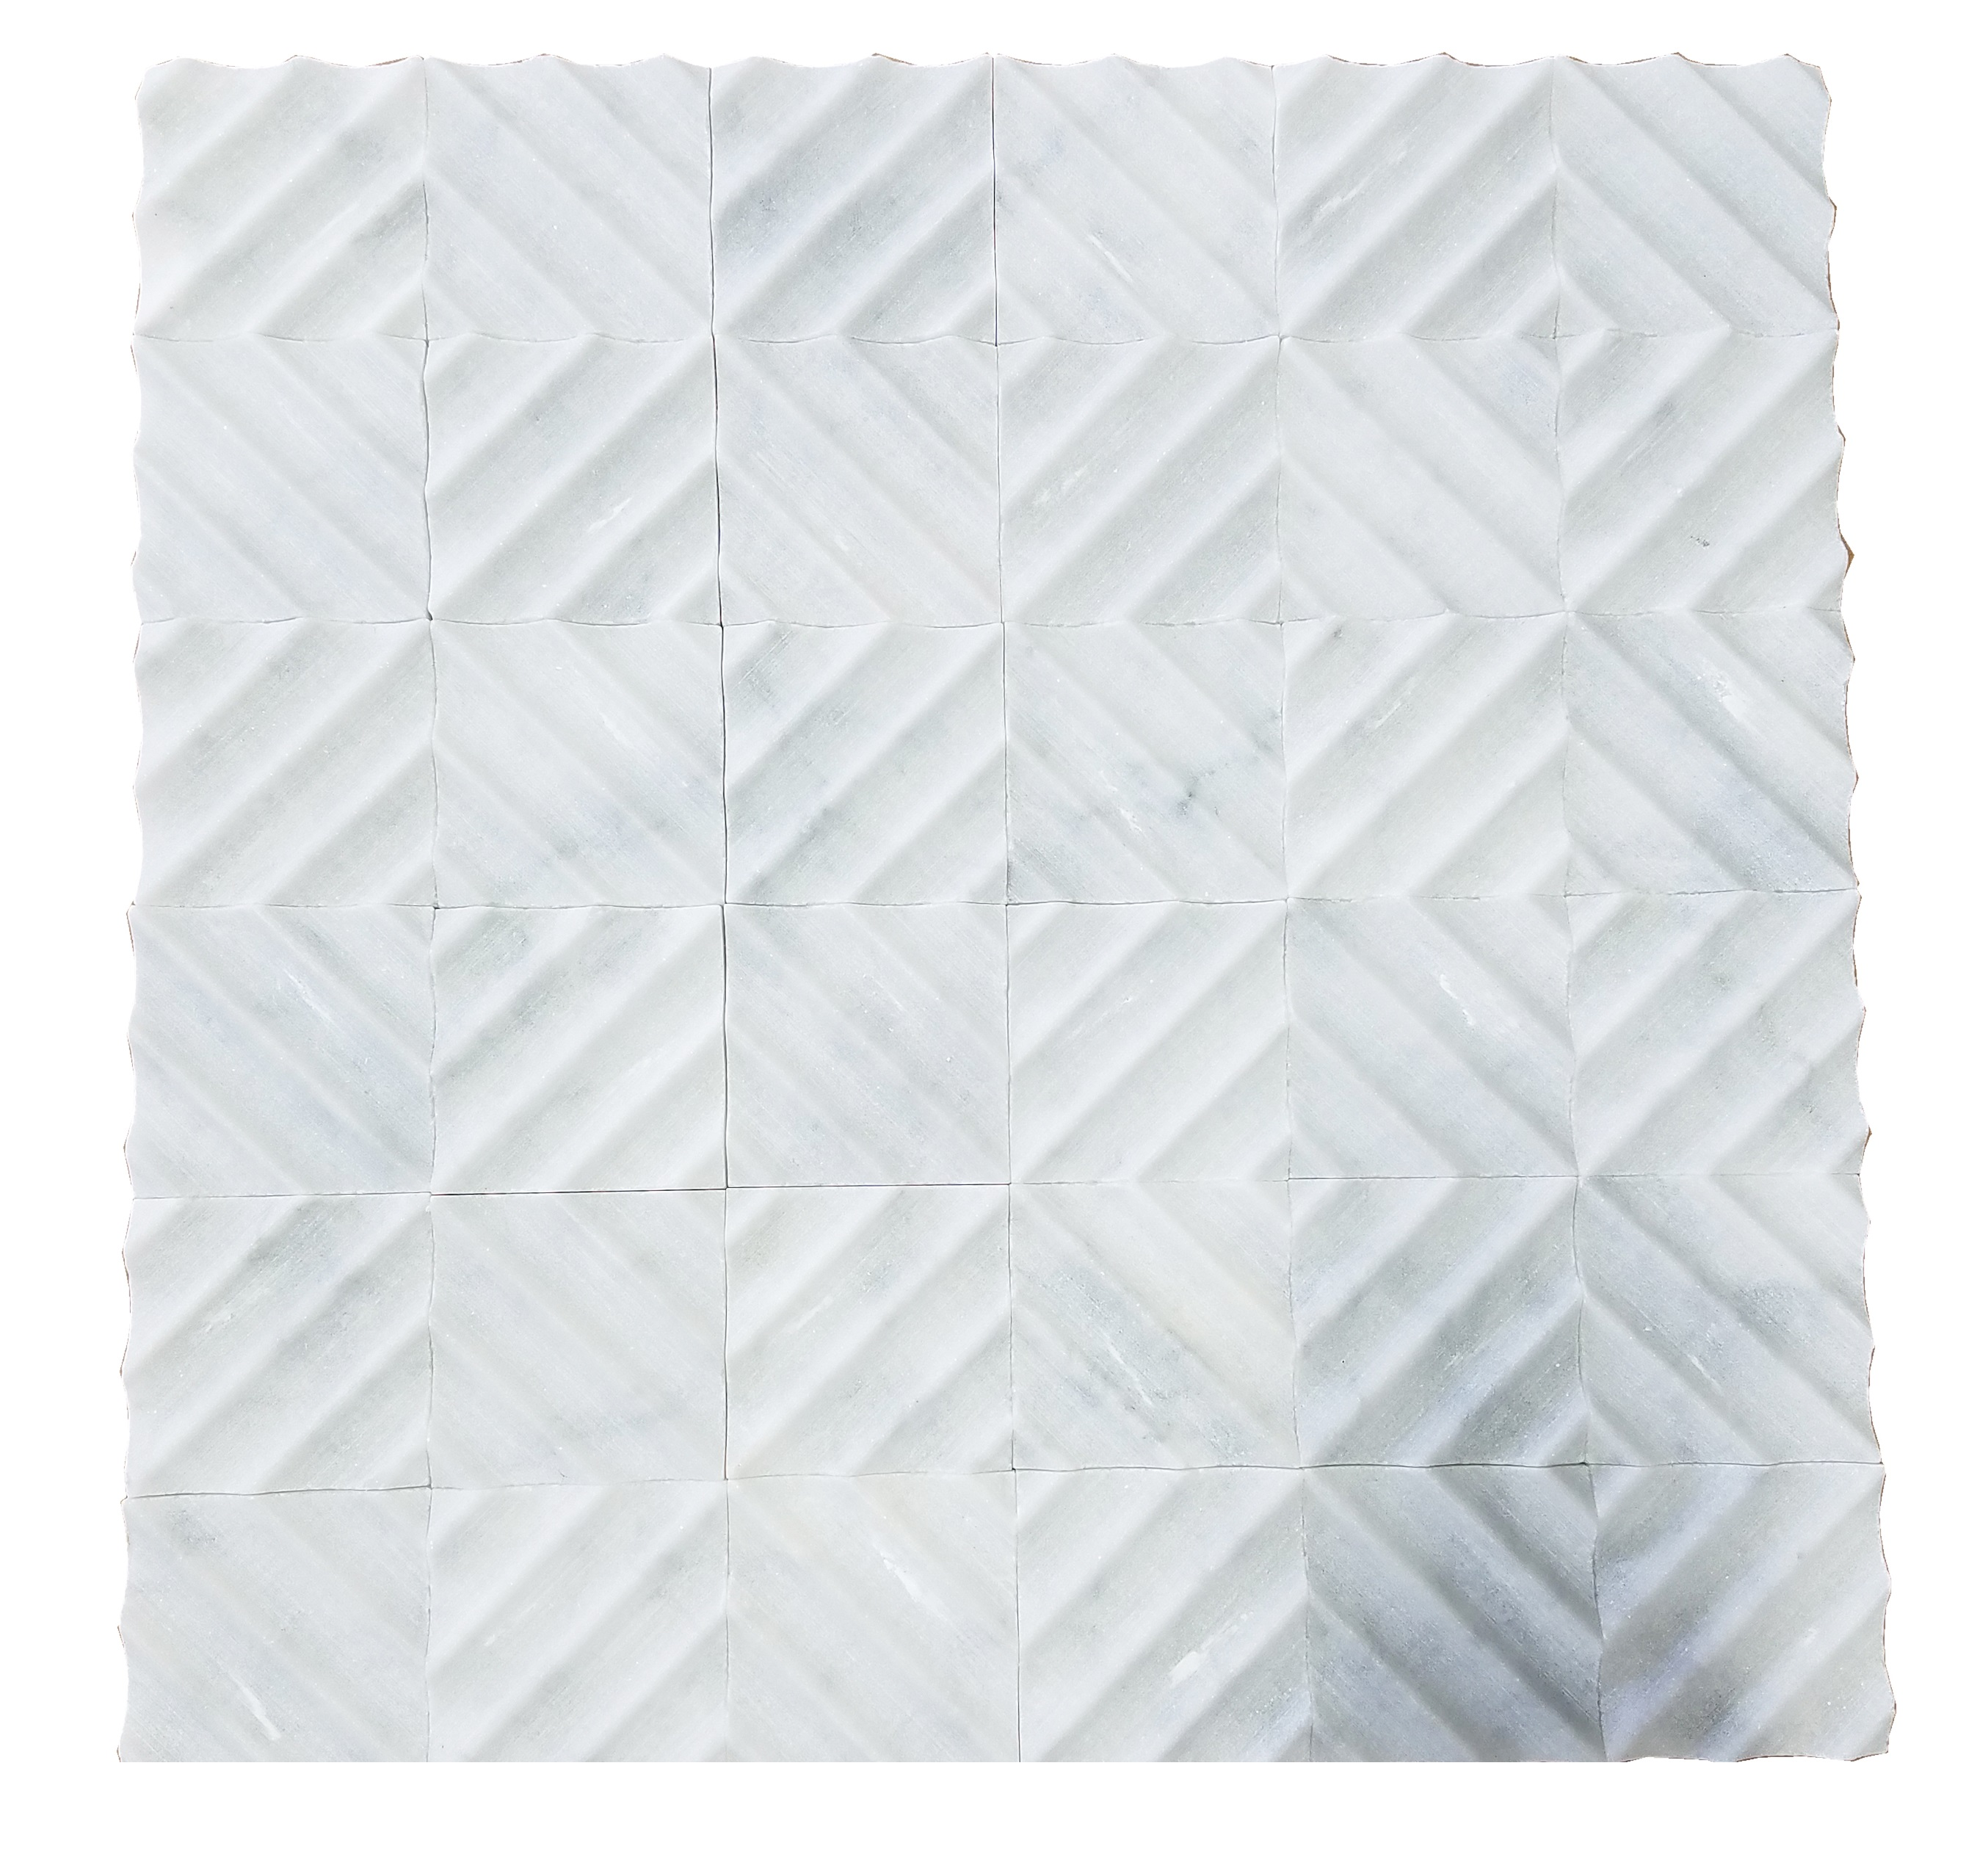 MA229-RQ  White Carrara Marble Mosaic Honed